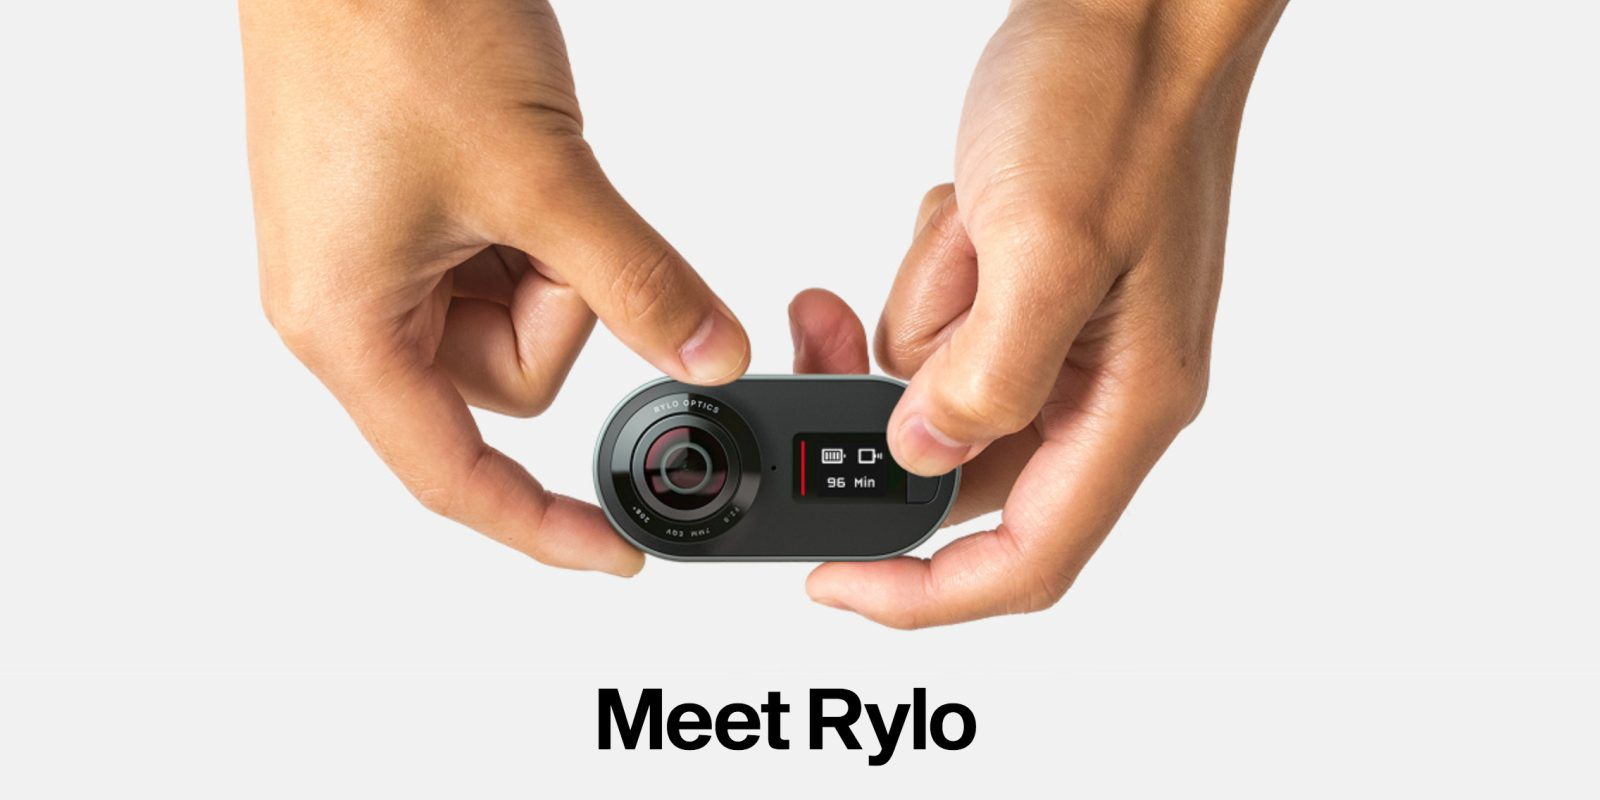 Rylo Action Camera shoots 5.8K 360-degree pics anywhere: $200 (Reg. $500)